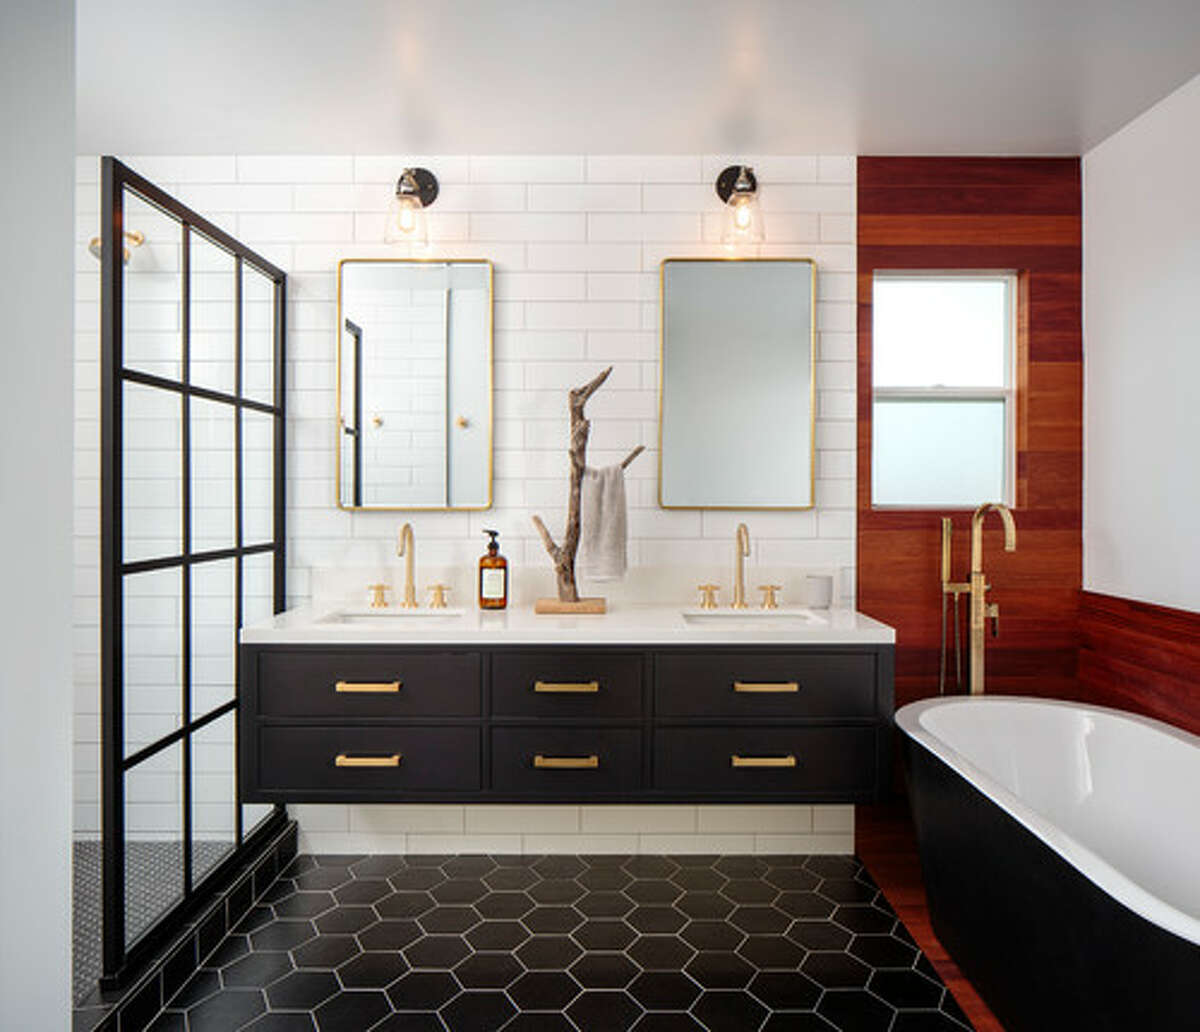 """2. Black is back Some may say this is the pendulum swinging away from all-white interiors, but many of our experts predict that black furnishings will be bigger than ever in 2020. Brett Elron, owner and lead interior designer at BarterDesign.co in New York, says we will see black on larger design elements like accent walls, sofas, and cabinets. """"And if you pair up your dark doors with great hardware, you really add some character to your home,"""" he says. Gray-Plaisted agrees, saying that black cabinetry is the new alternative to white. """"If black cabinetry is too much for you in a kitchen, consider the lowers to be done in black and the uppers done in wood,"""" she recommends. Anne R. Kokoskie of Styled by ARK says that she expects to see the rise of black tubs and bold, dark colors on doors."""